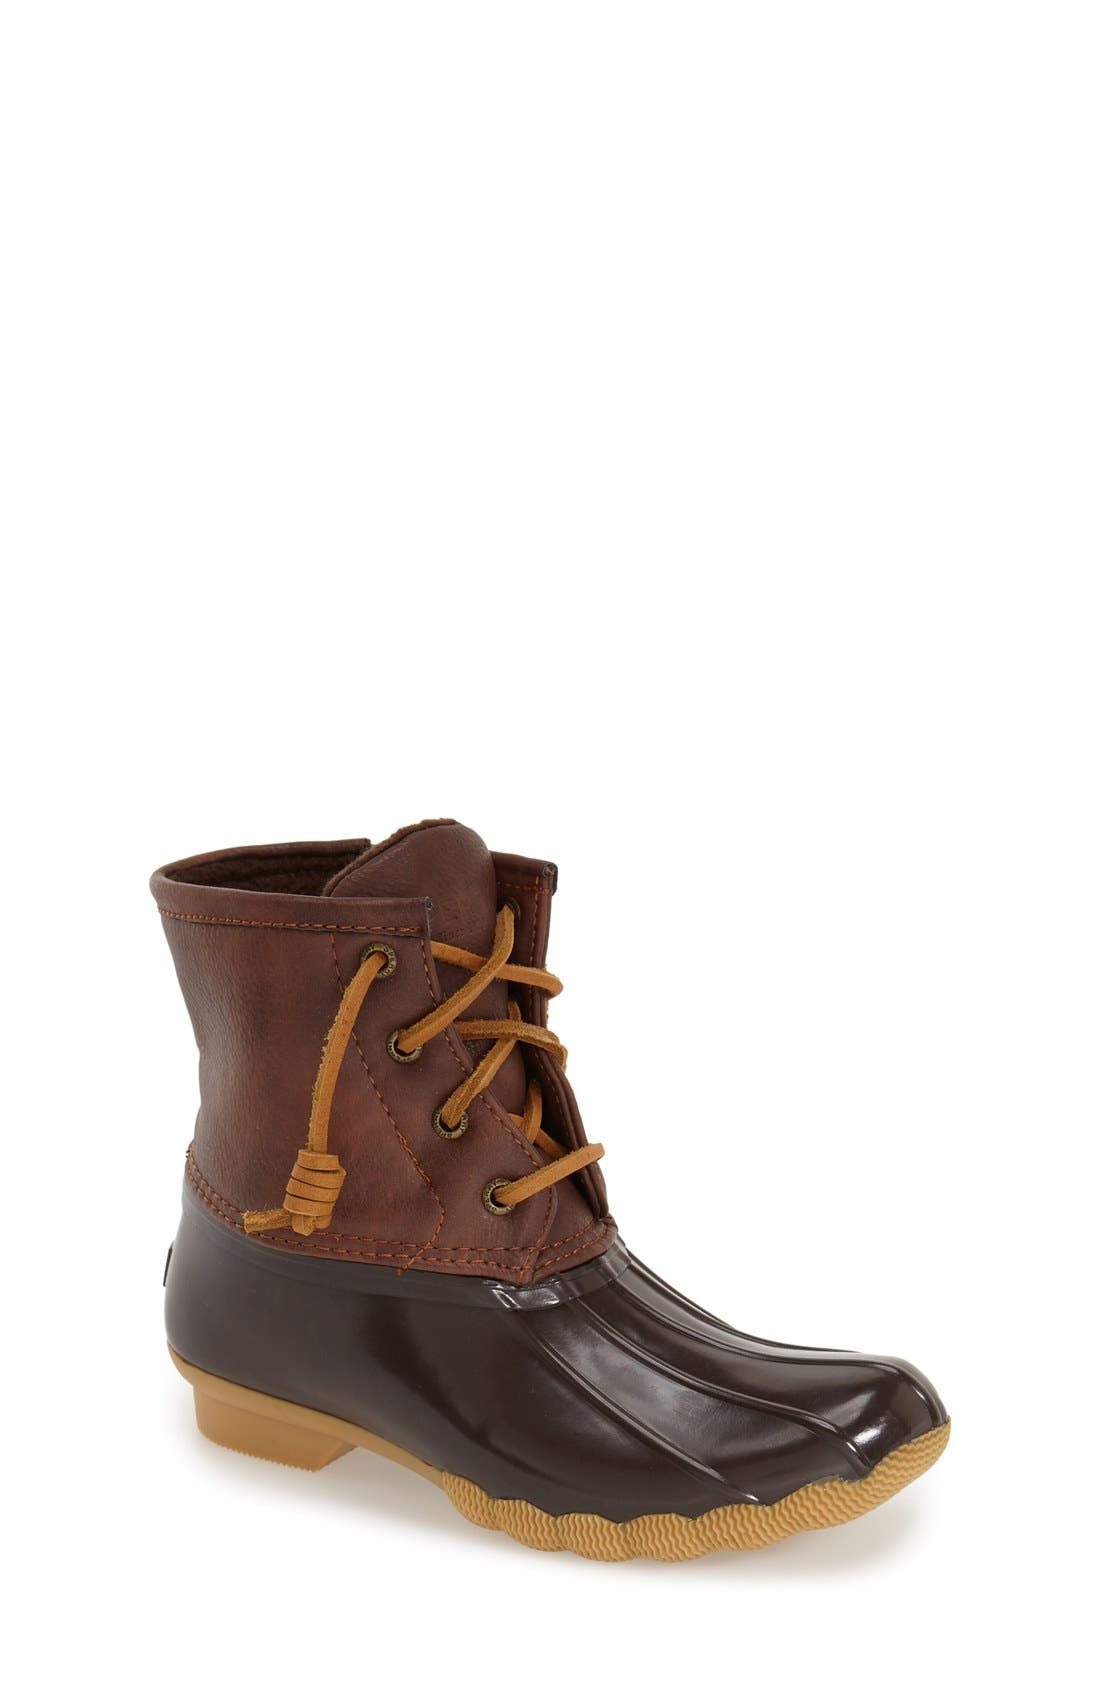 Saltwater Duck Boot,                             Main thumbnail 1, color,                             BROWN